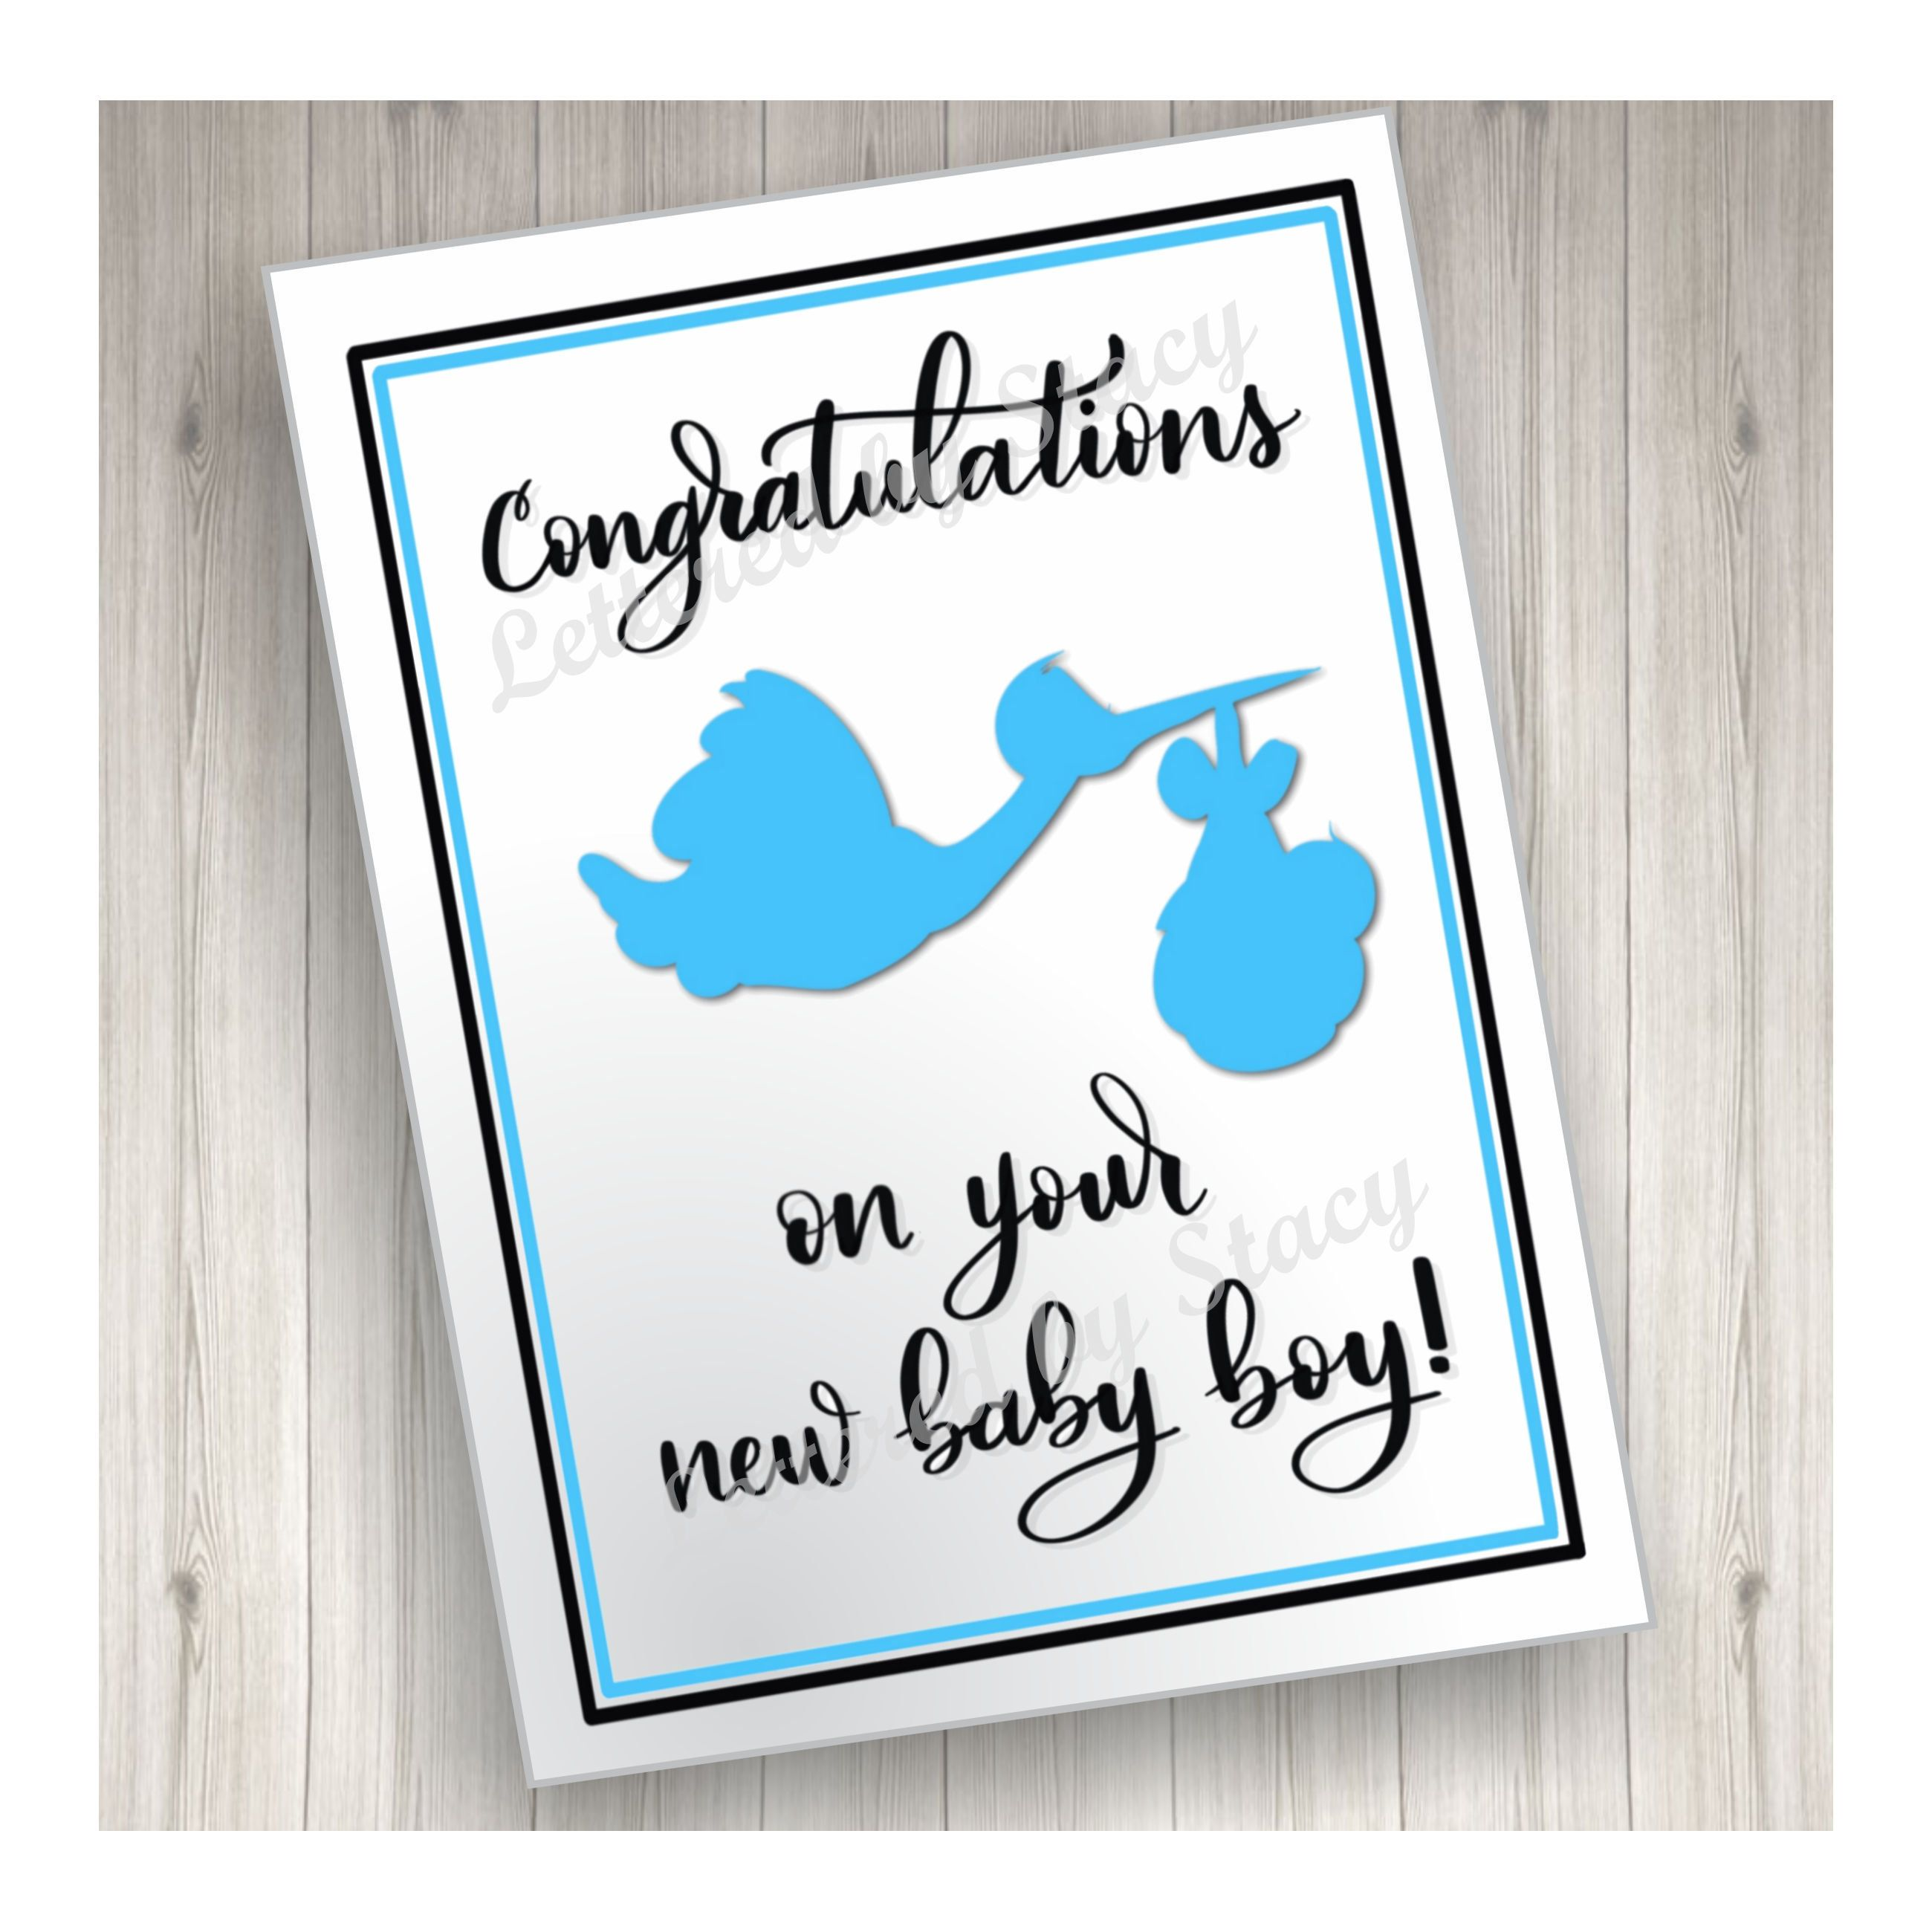 New Baby Card Congratulations On Your New Baby Boy With Blue Etsy Baby Boy Cards New Baby Cards New Baby Products